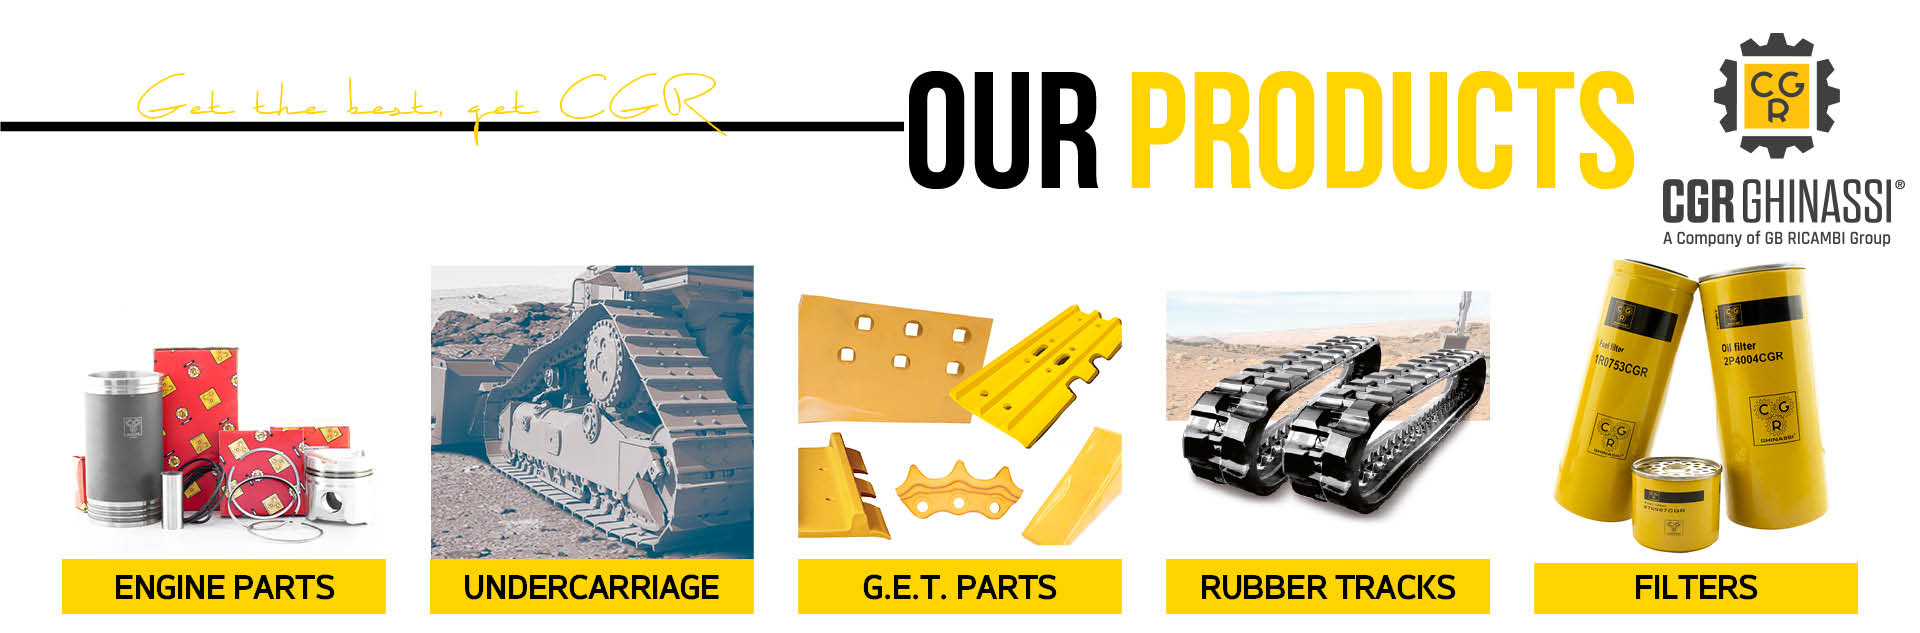 CGR GHINASSI Aftermarket Caterpillar replacement parts